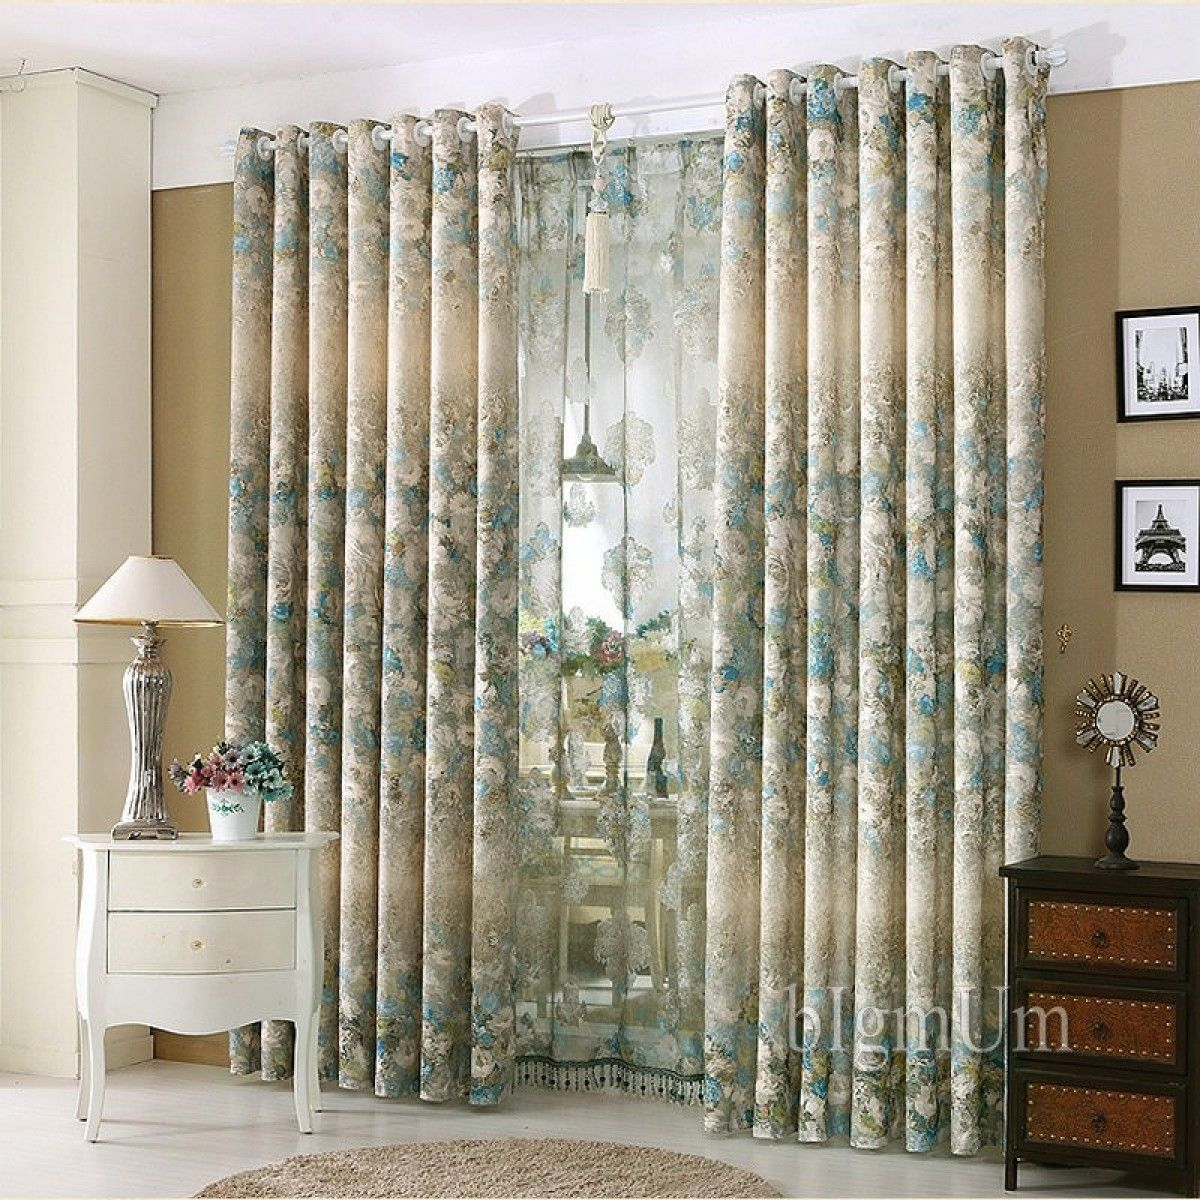 Luxury Window Curtains For Living Room Bedroom Hotel Printed Jacquard